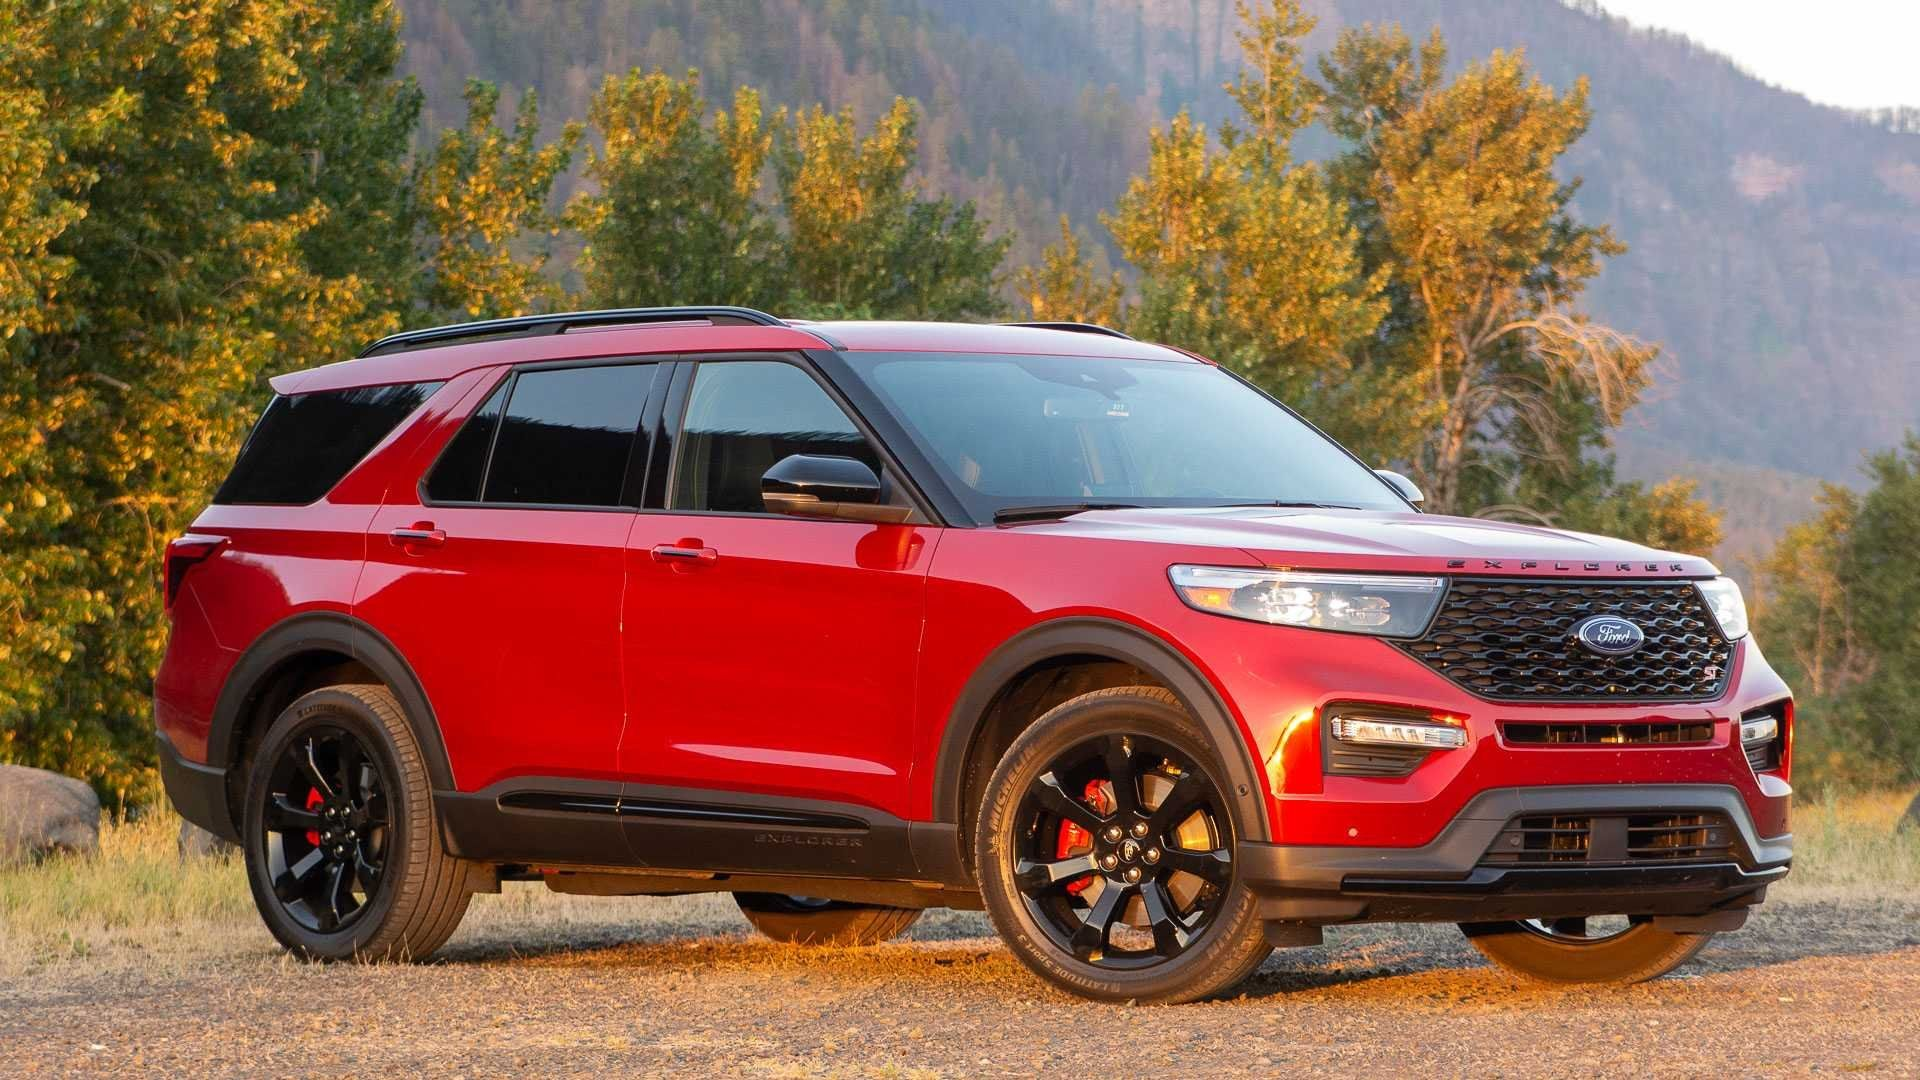 2020 Ford Svt Bronco Raptor Wallpaper In 2020 Ford Explorer 2020 Ford Explorer Ford Explorer Sport